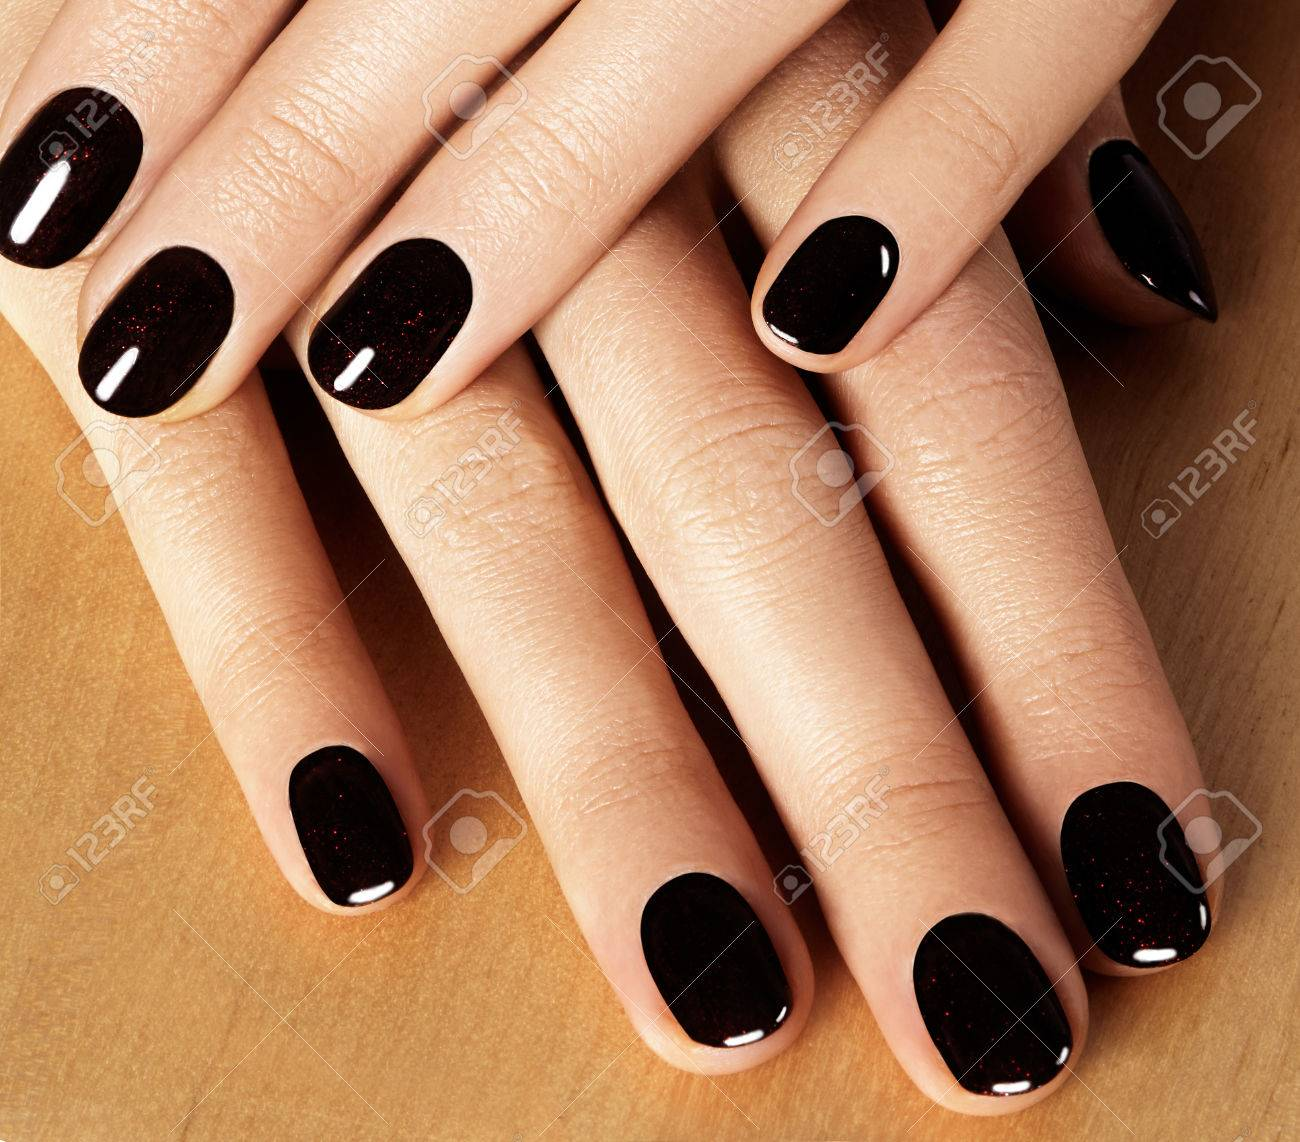 Black Nail Polish. Manicured Nails With Black Nail Polish. Manicure ...